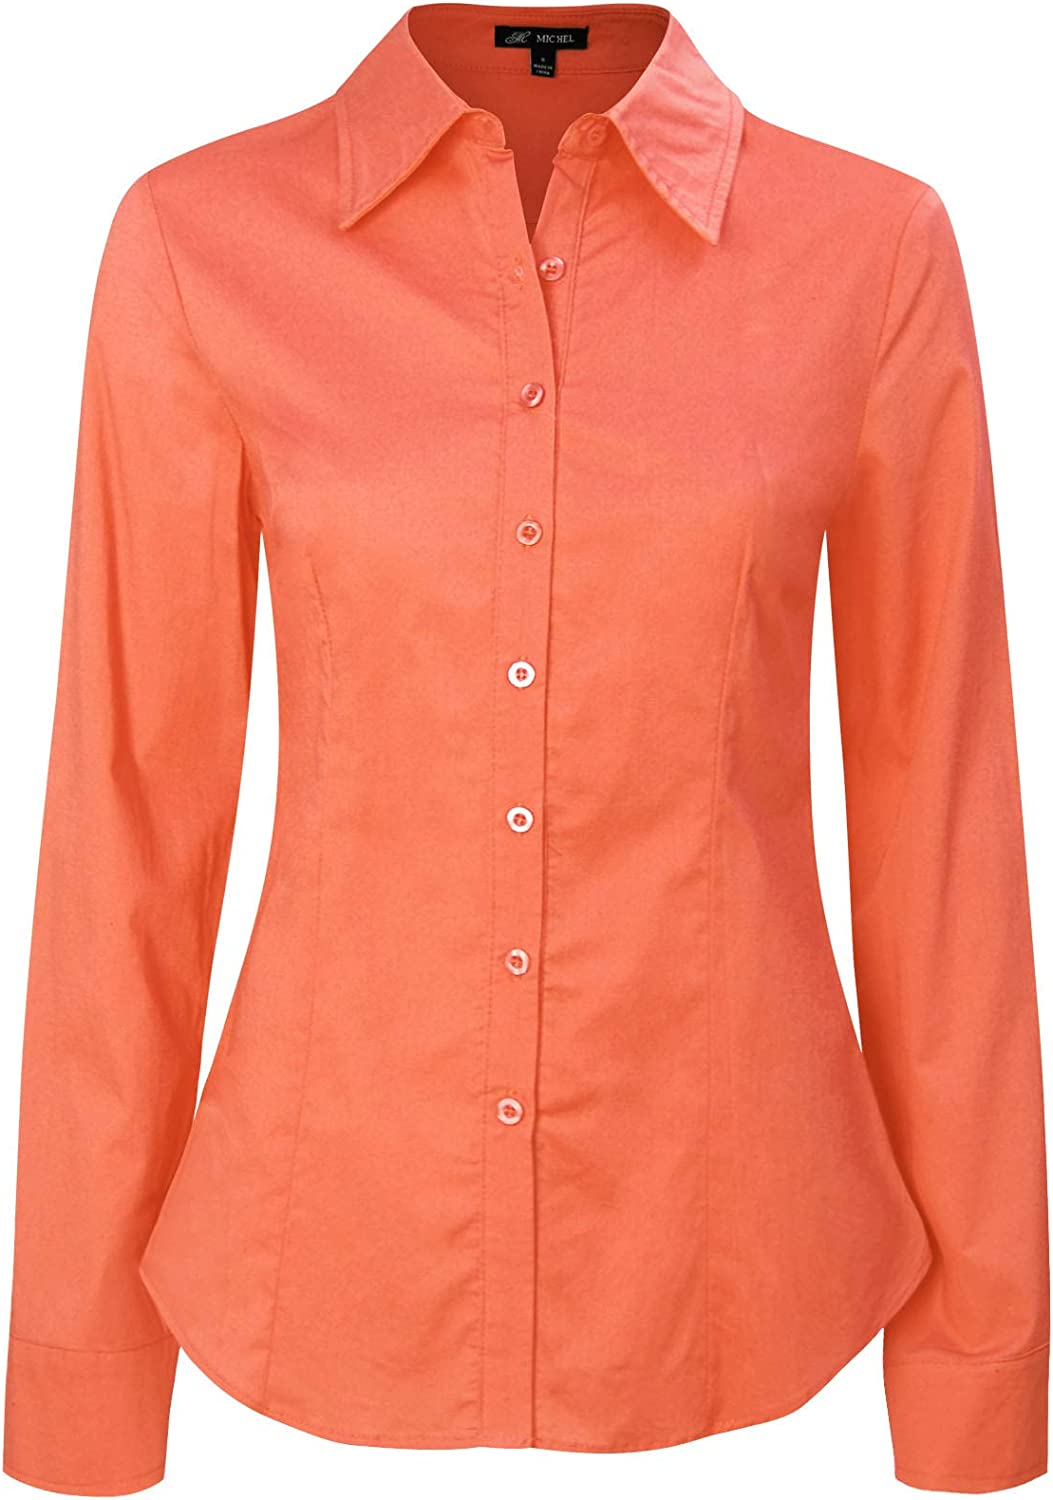 Michel Womens Long Sleeve Shirts Blouse Casual Shirts with Plus Size (1XL ~ 3XL)